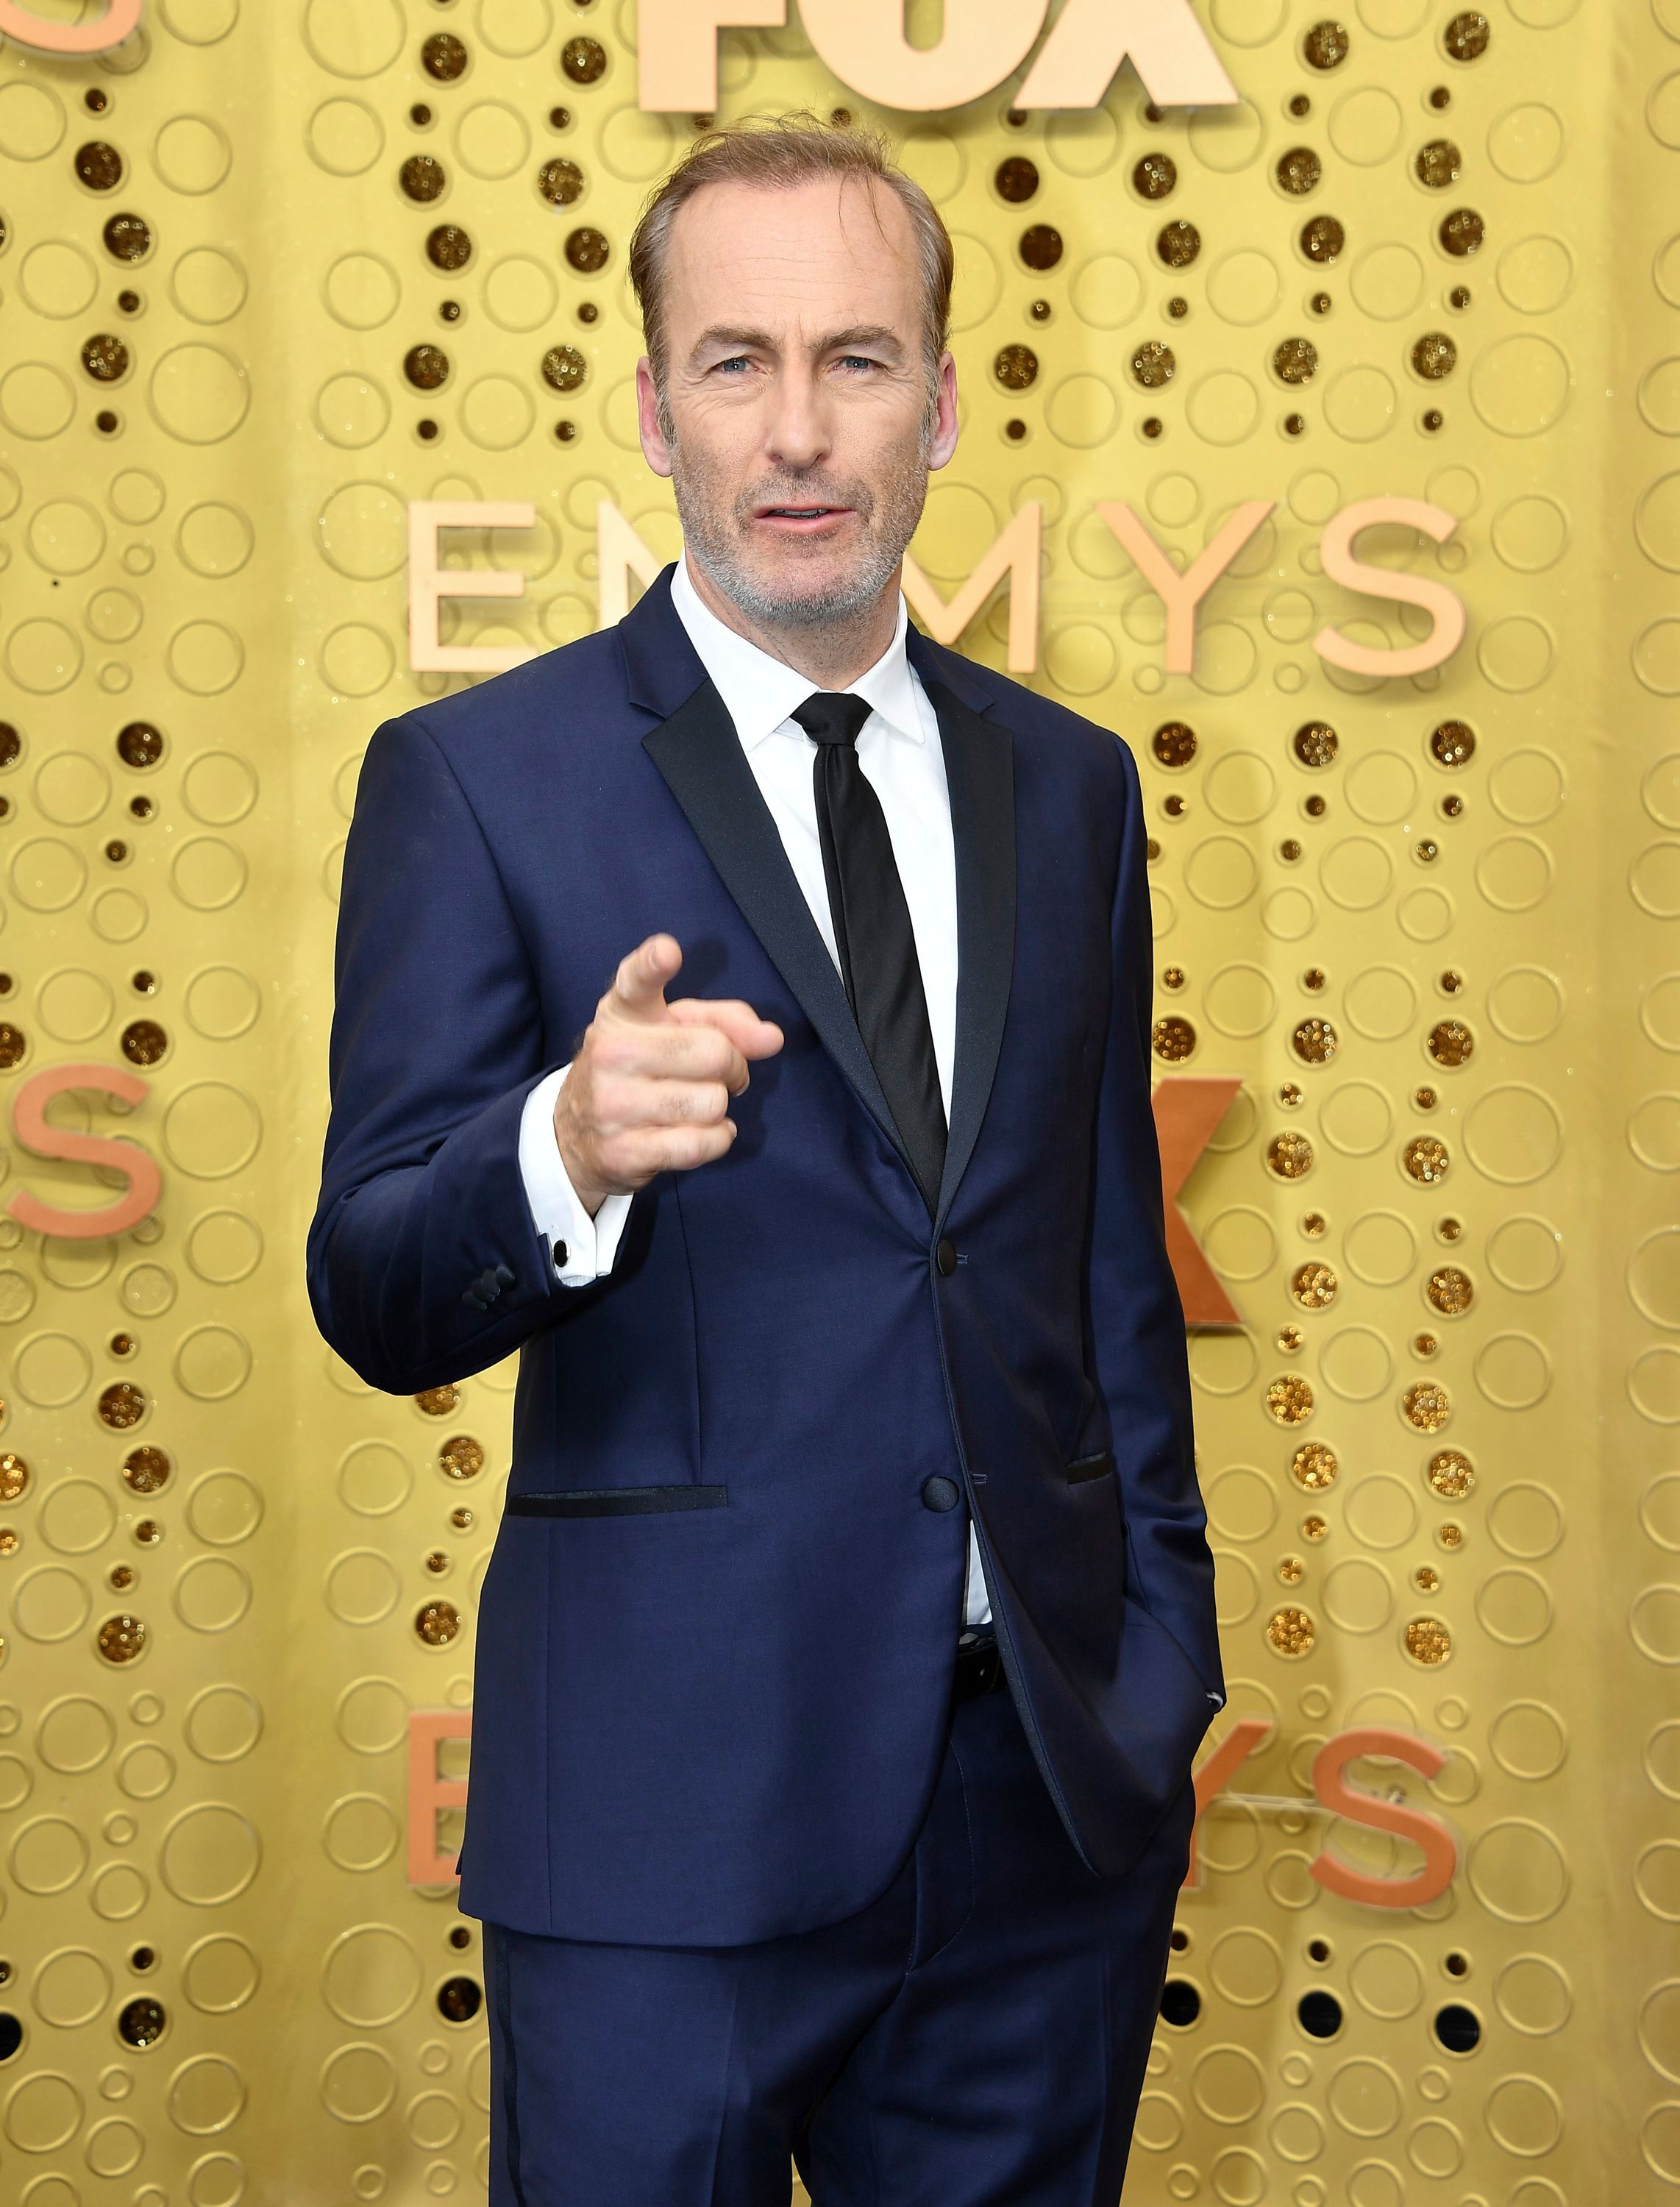 Bob Odenkirk arrives at the 71st Primetime Emmy Awards, at the Microsoft Theater in Los Angeles71st Primetime Emmy Awards - Arrivals, Los Angeles, USA - 22 Sep 2019